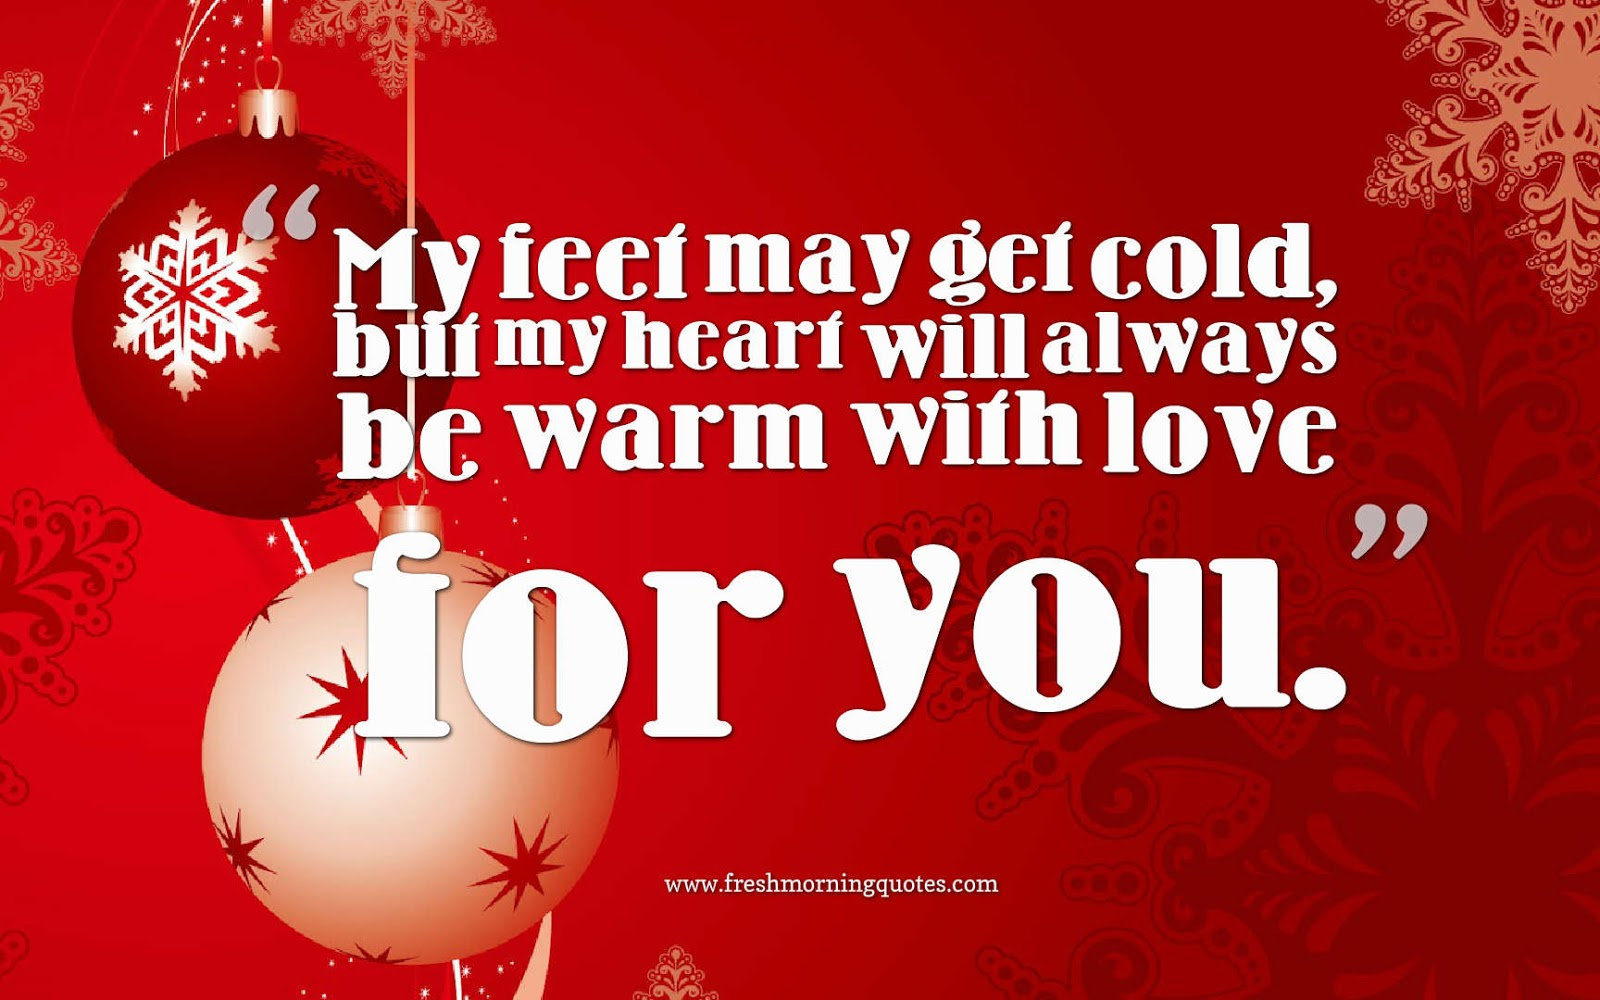 Heart Touching Christmas Love Messages for wife